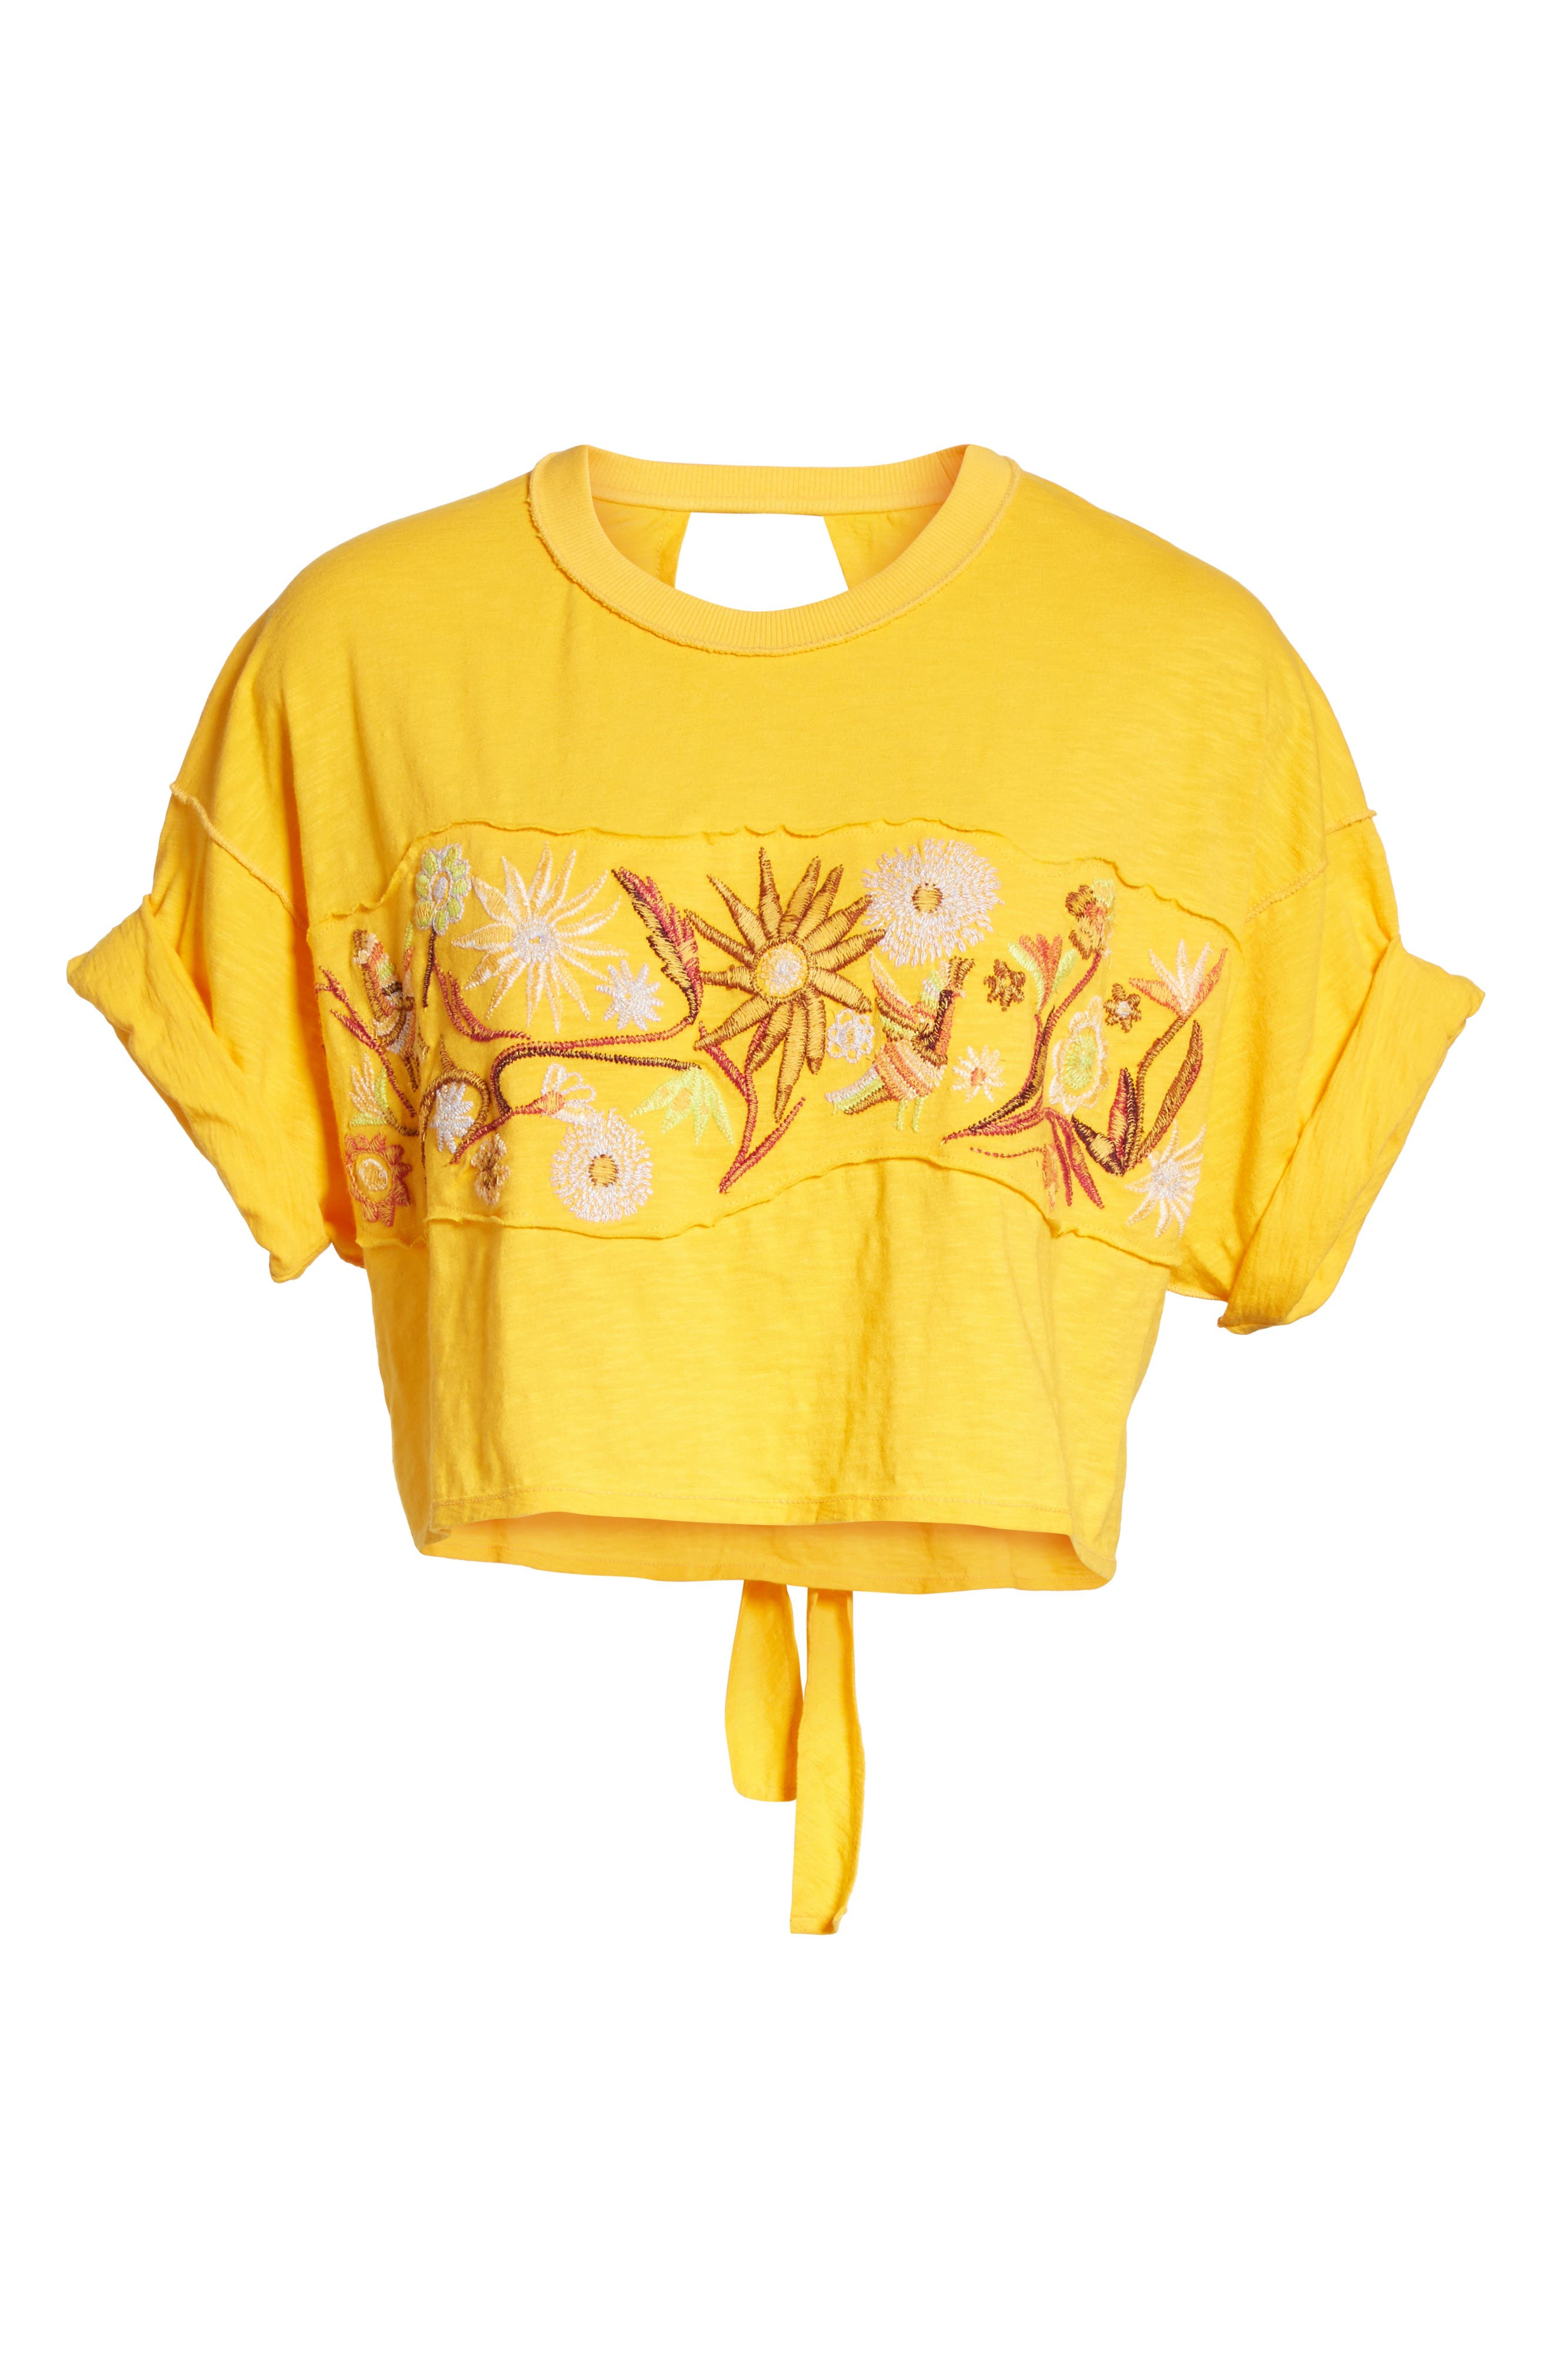 Garden Time Embroidered Tee,                             Alternate thumbnail 6, color,                             700